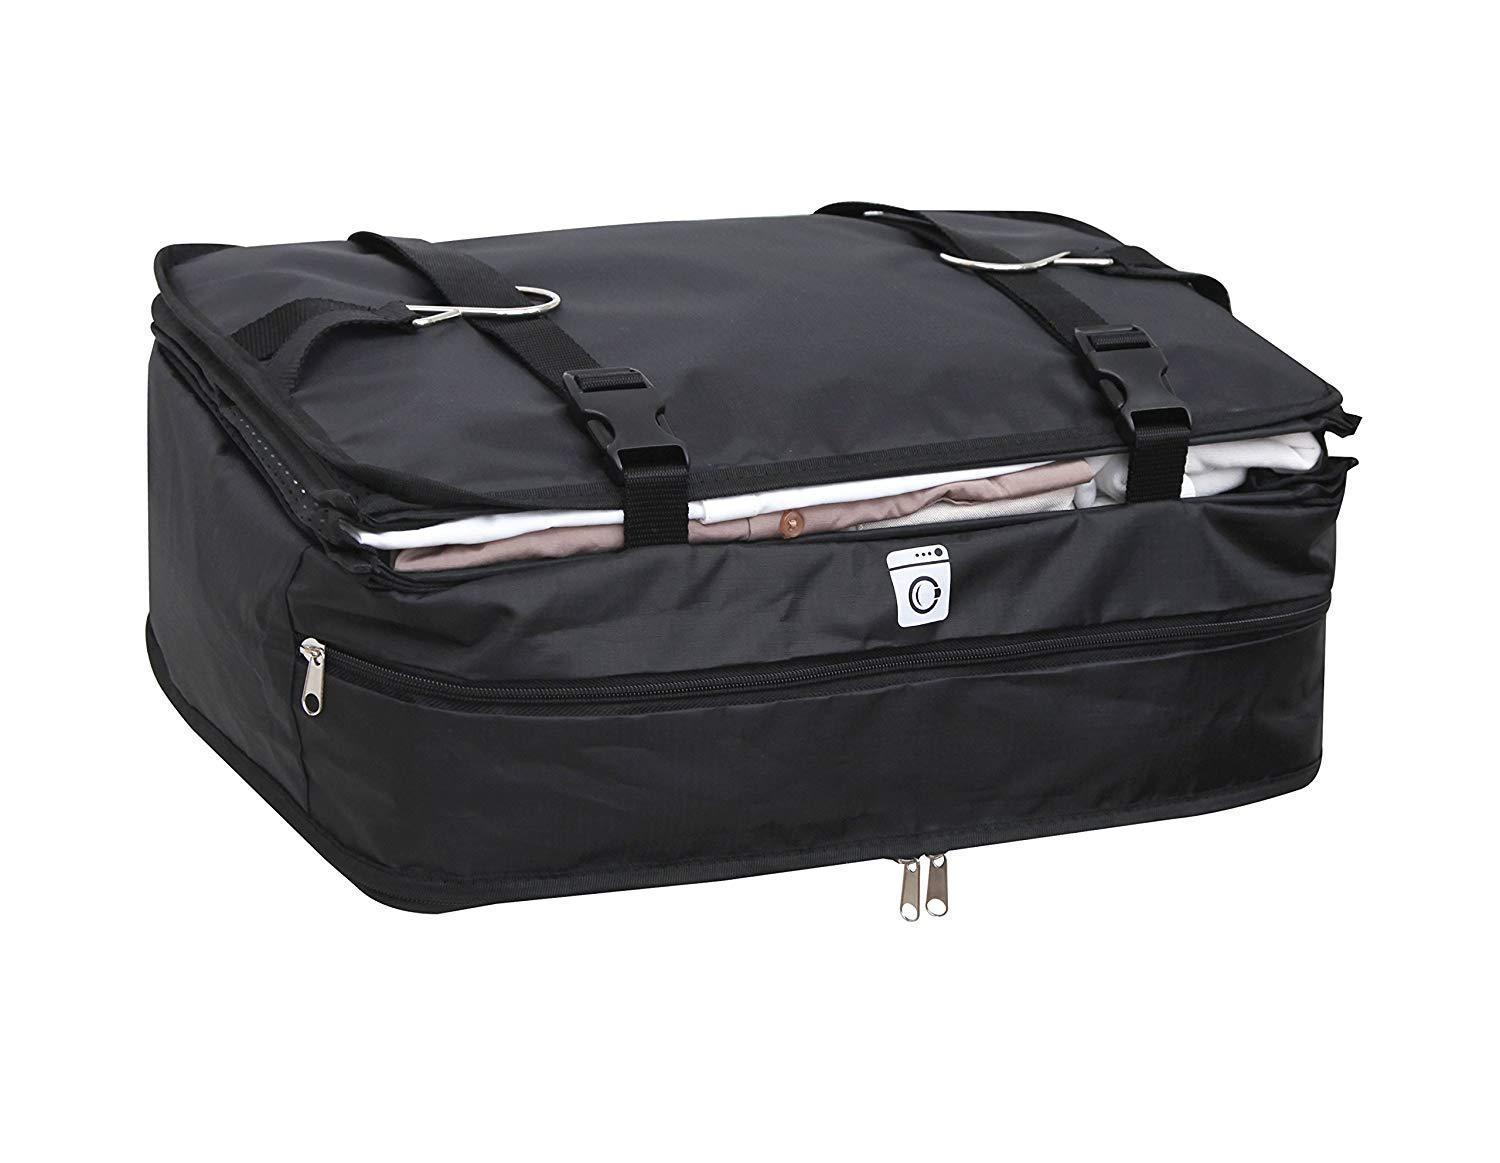 3-Layer Travel Wardrobe Bag